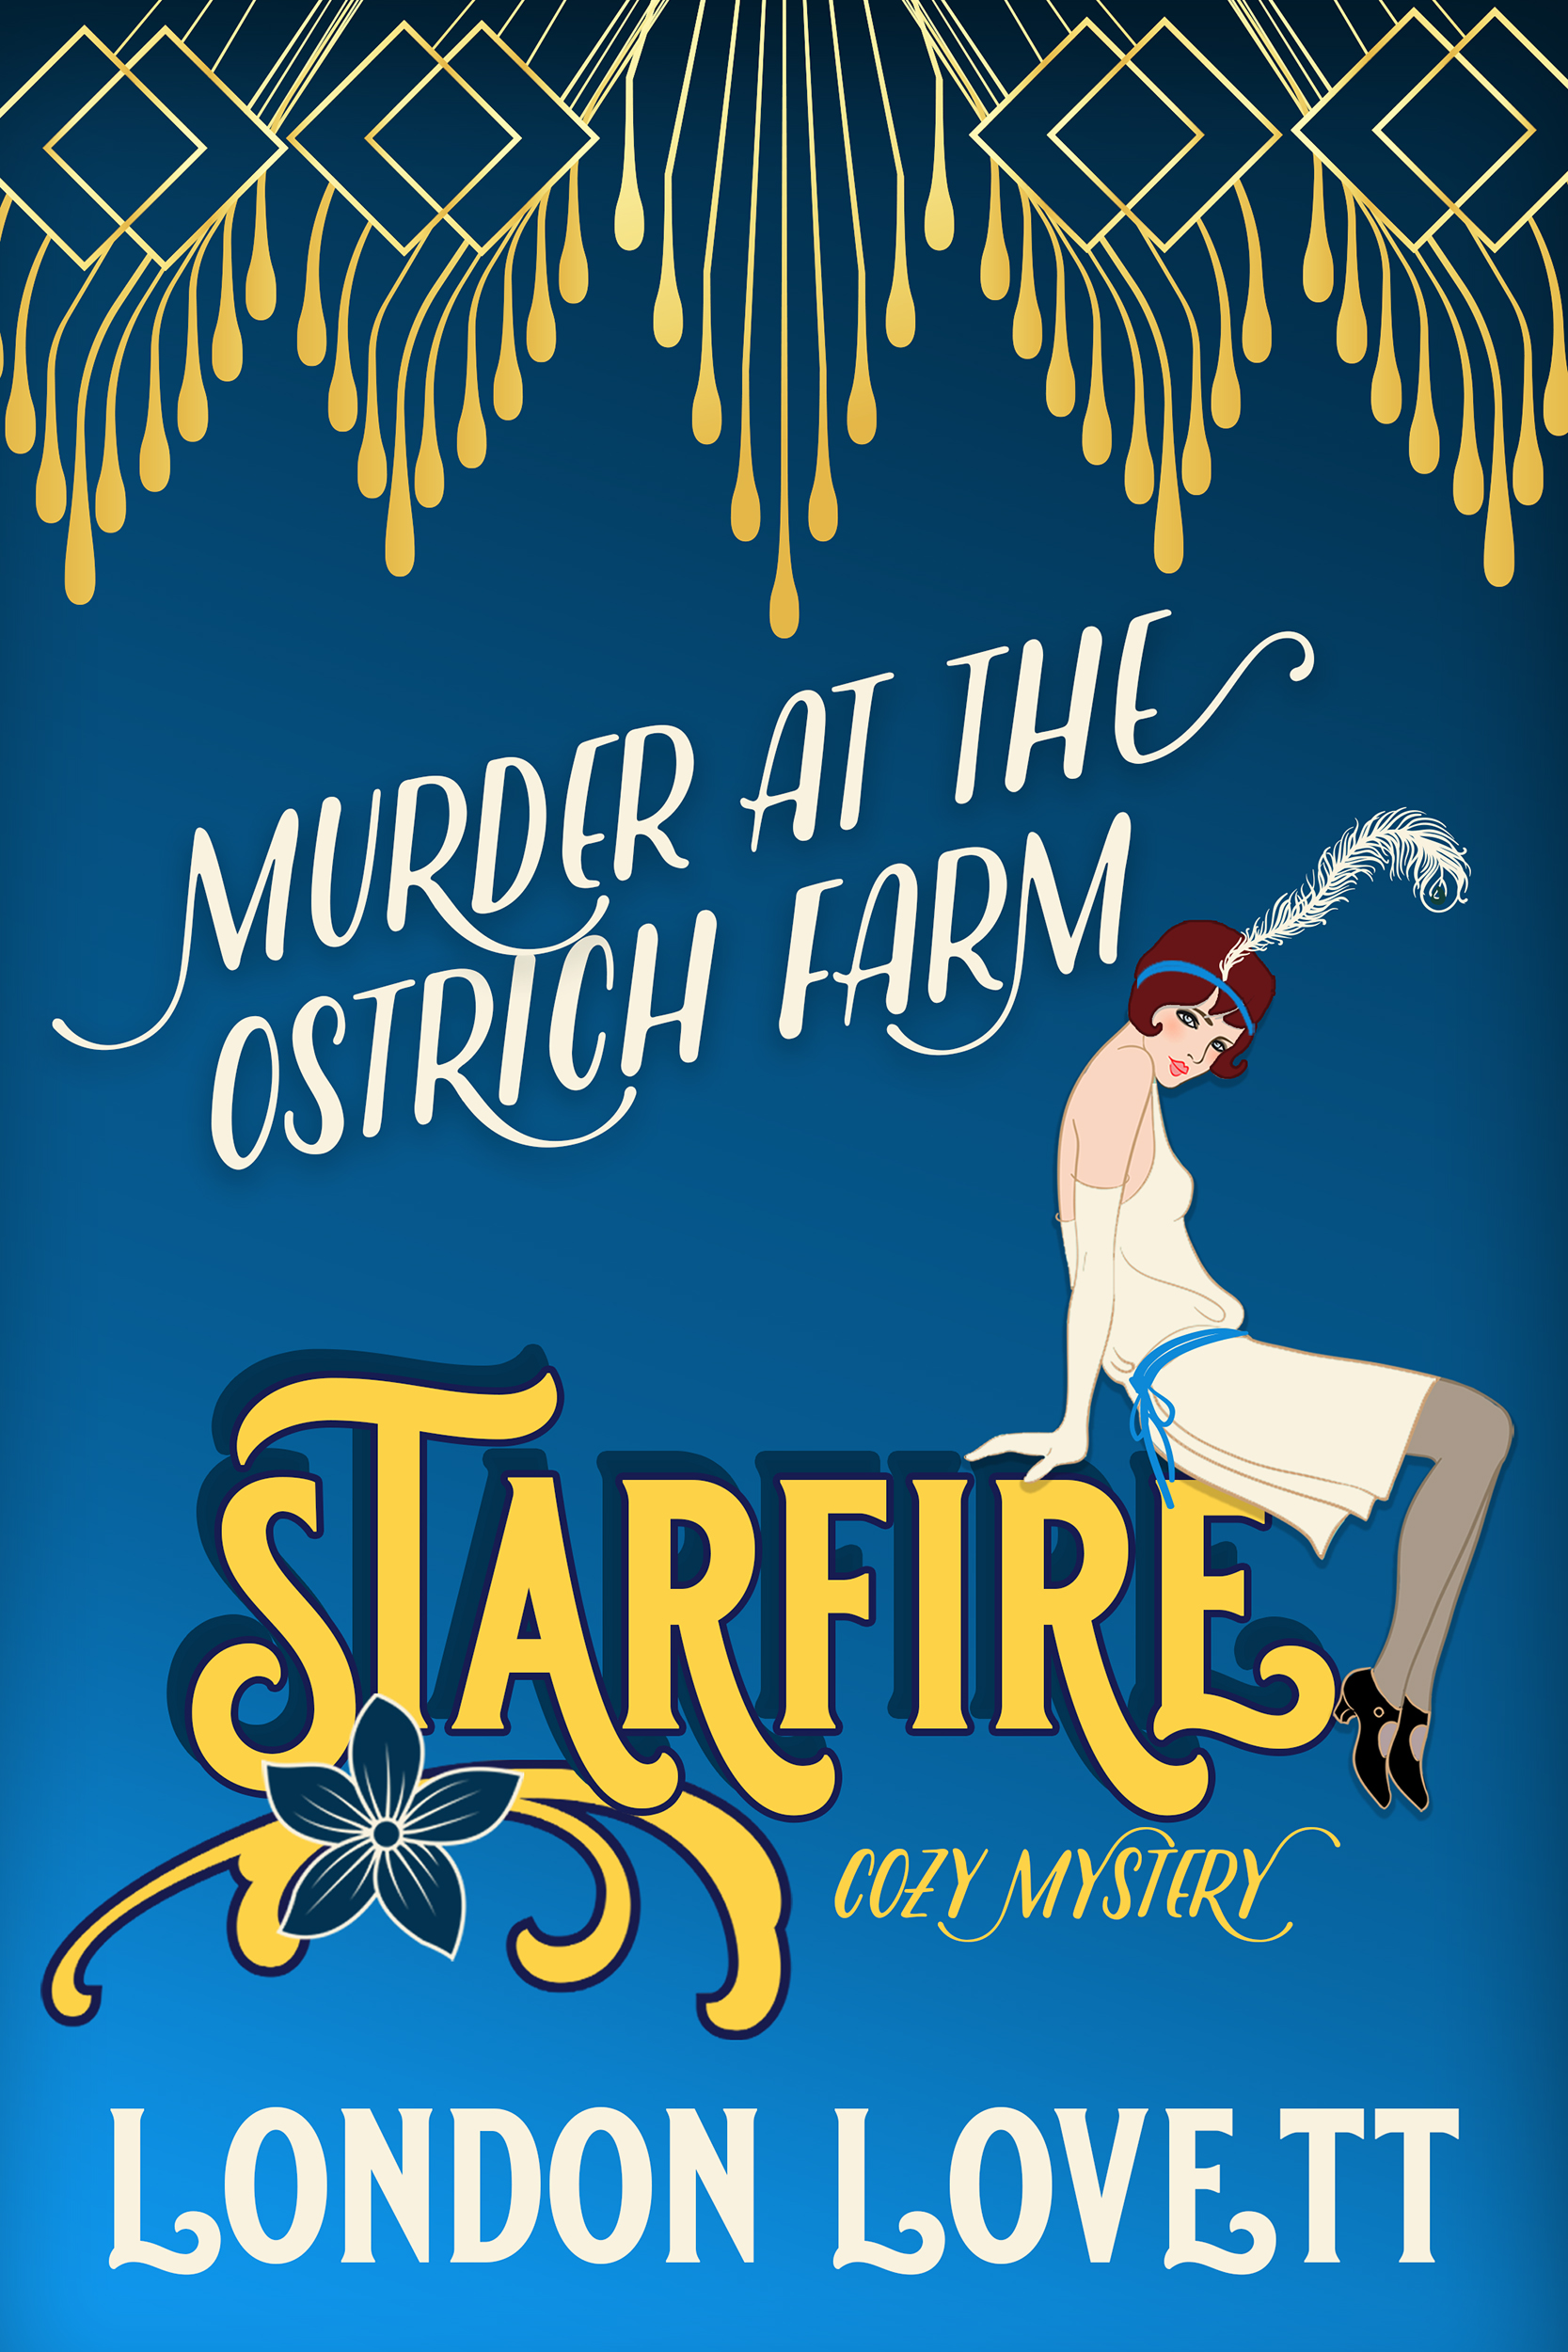 Murder at the Ostrich Farm - Poppy Starfire is looking forward to a summer outing at Dawson Ostrich Farm with two of her favorite people, her brother Jasper and her dad. The day starts out well enough with souvenir shopping, cold lemonades and, of course, plenty of ostriches. But when one of the farm visitors is found strangled to death, the fun-filled visit takes a grim turn.When evidence and quick conclusions lead to an arrest, Ruby Dawson, the farm owner's daughter comes to the Starfire Detective Agency for help. Miss Dawson is certain the police have the wrong man and she hopes Poppy and Jasper can find the real killer. The Starfire investigators soon find themselves surrounded with motives, possible suspects, scant evidence and, of all things, ostriches.Read on: Amazon iBooks Nook Kobo Google